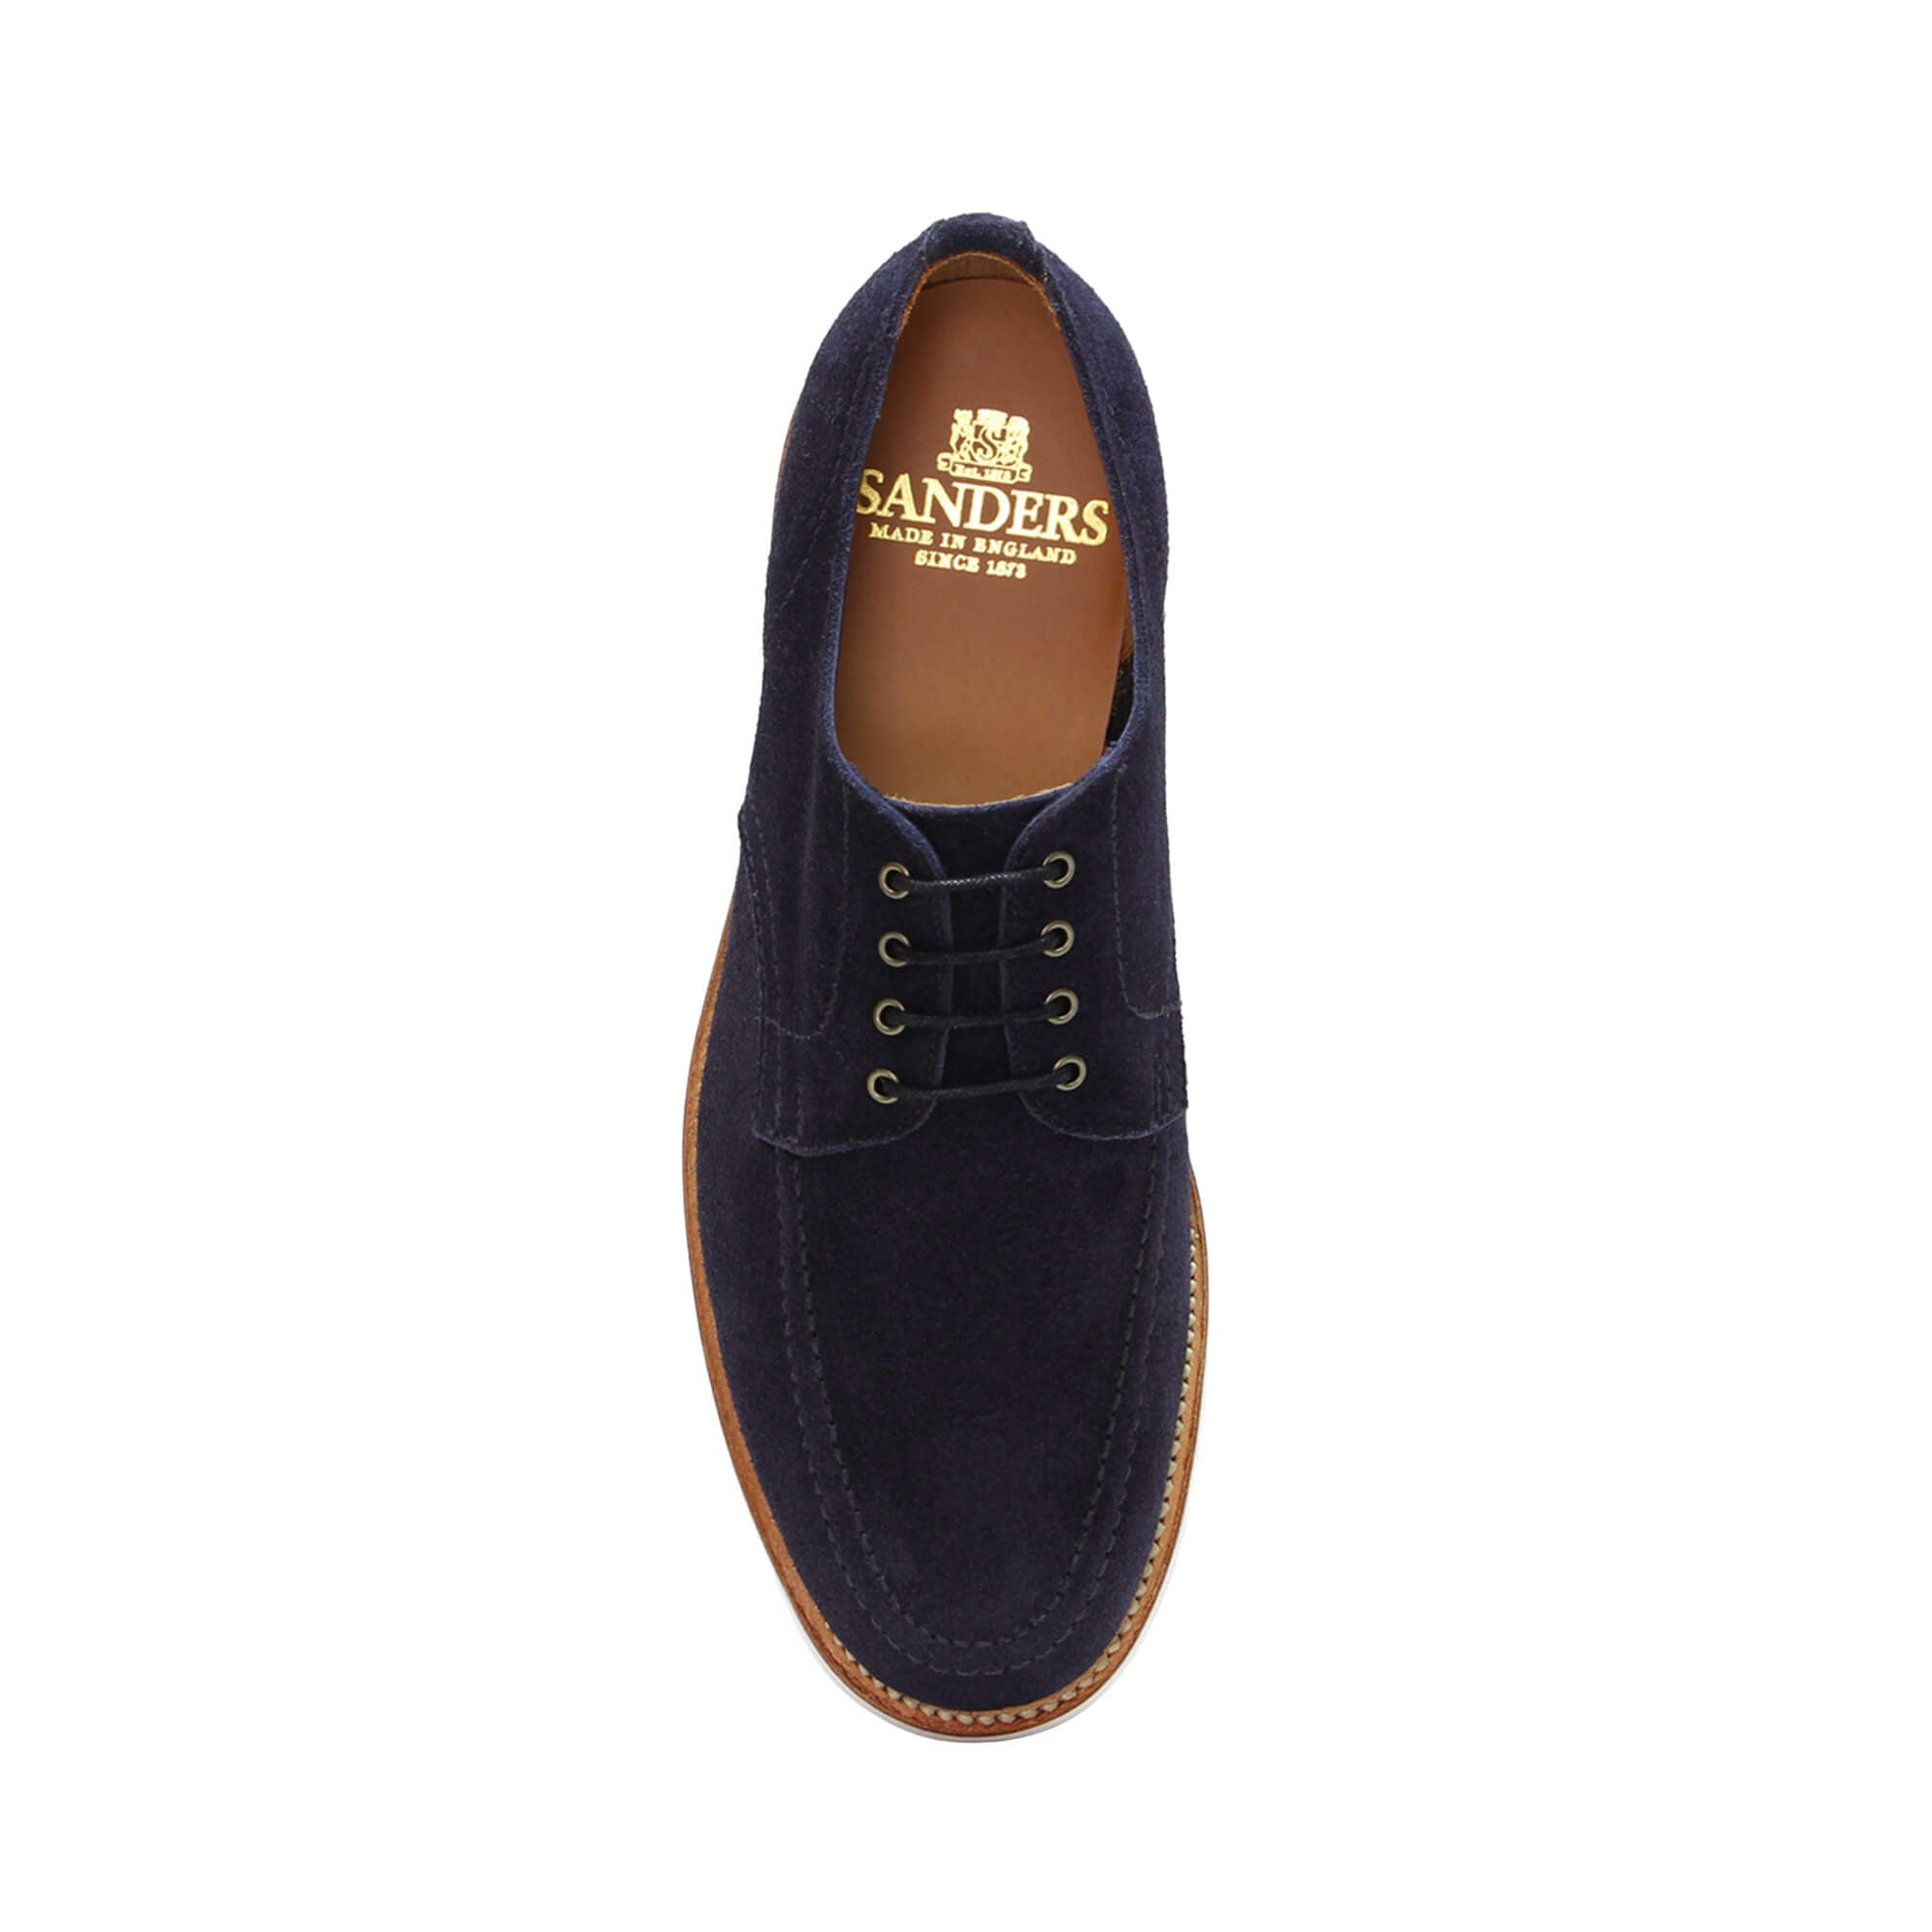 Sanders Men's Henry Suede Lace-Up Shoes 2132/AOS